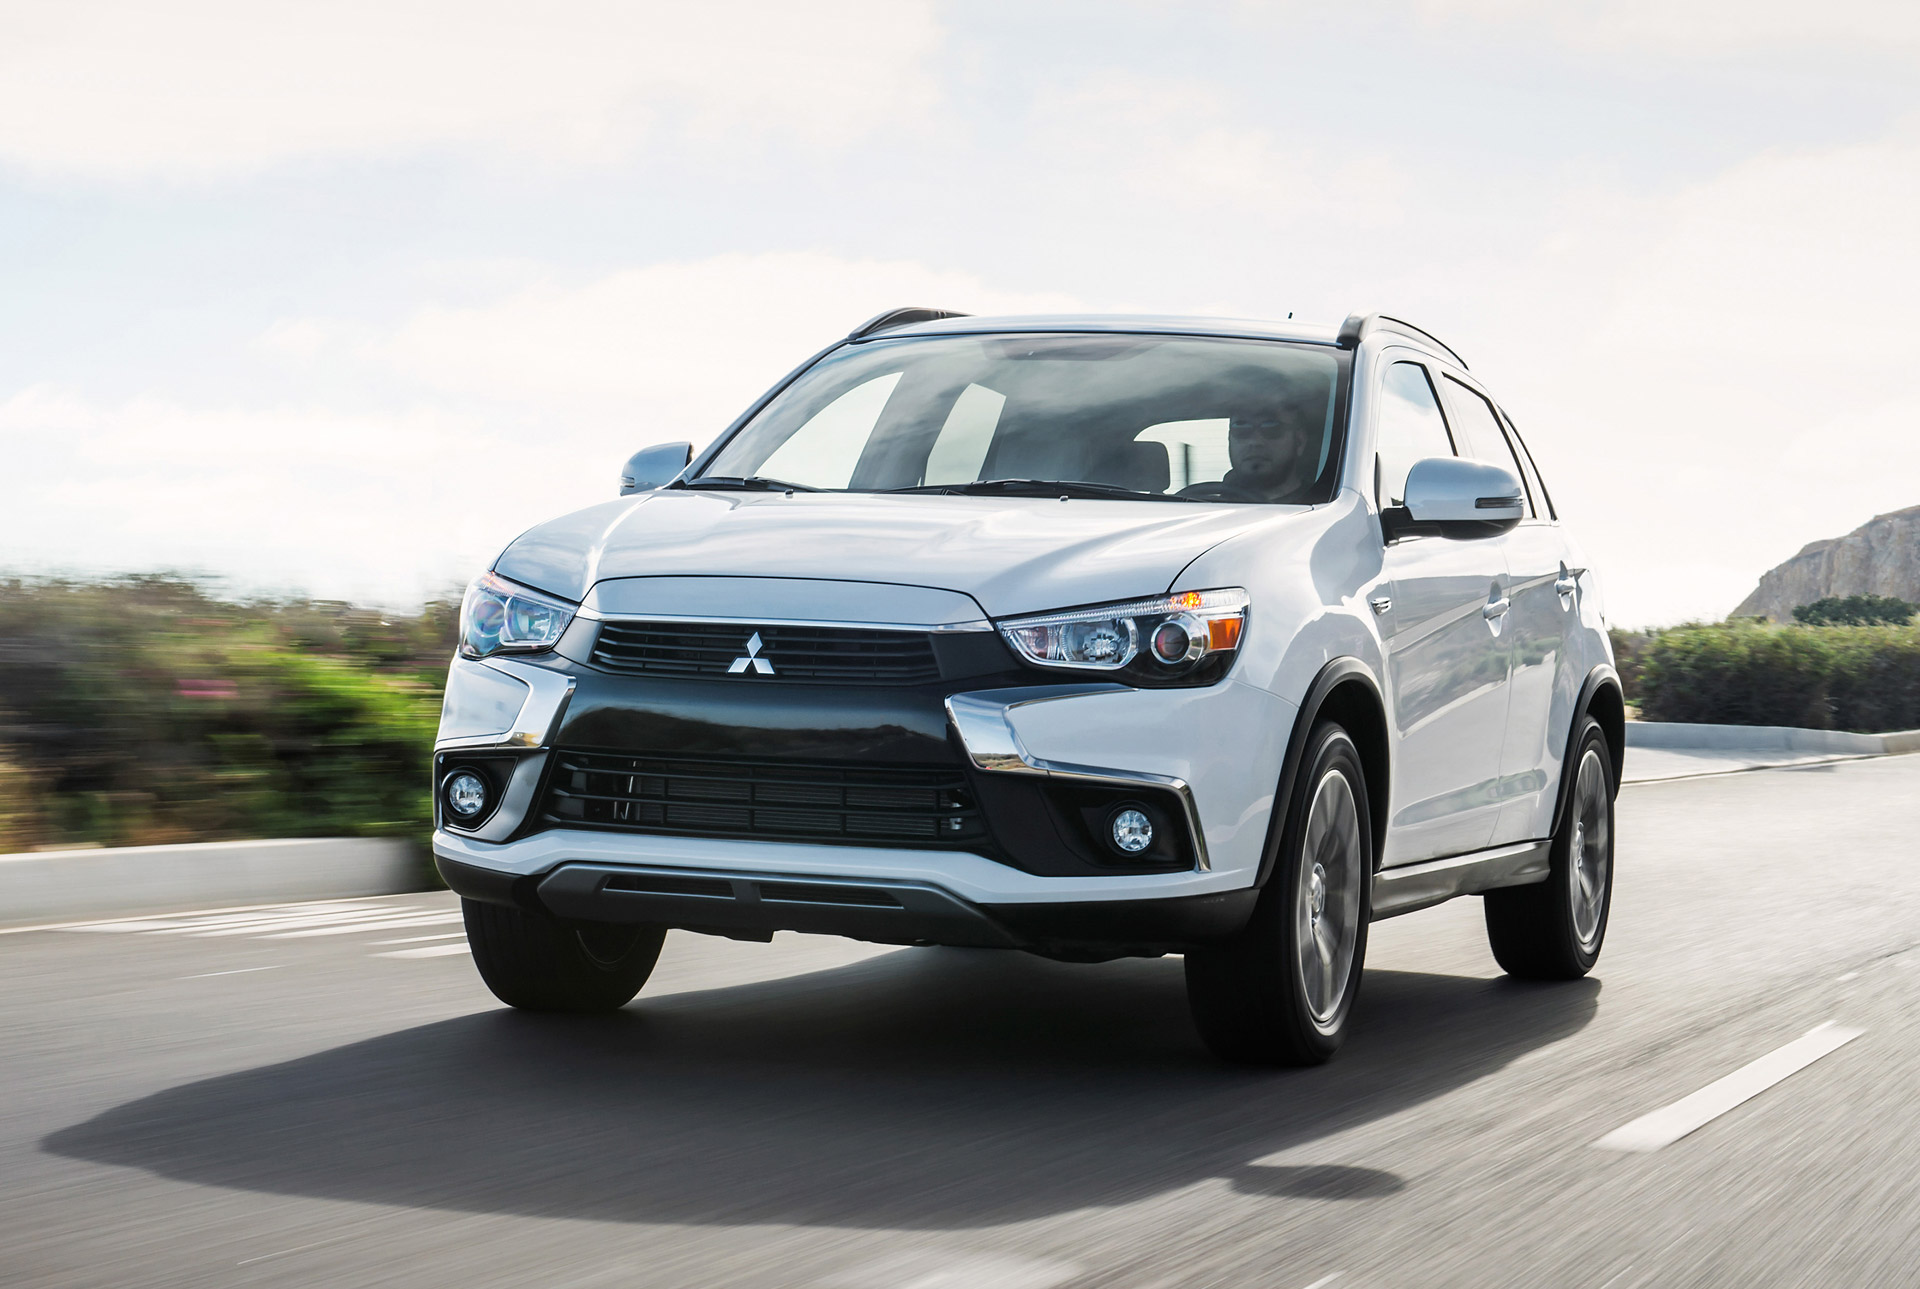 2016 Mitsubishi Outlander Review Ratings Specs Prices